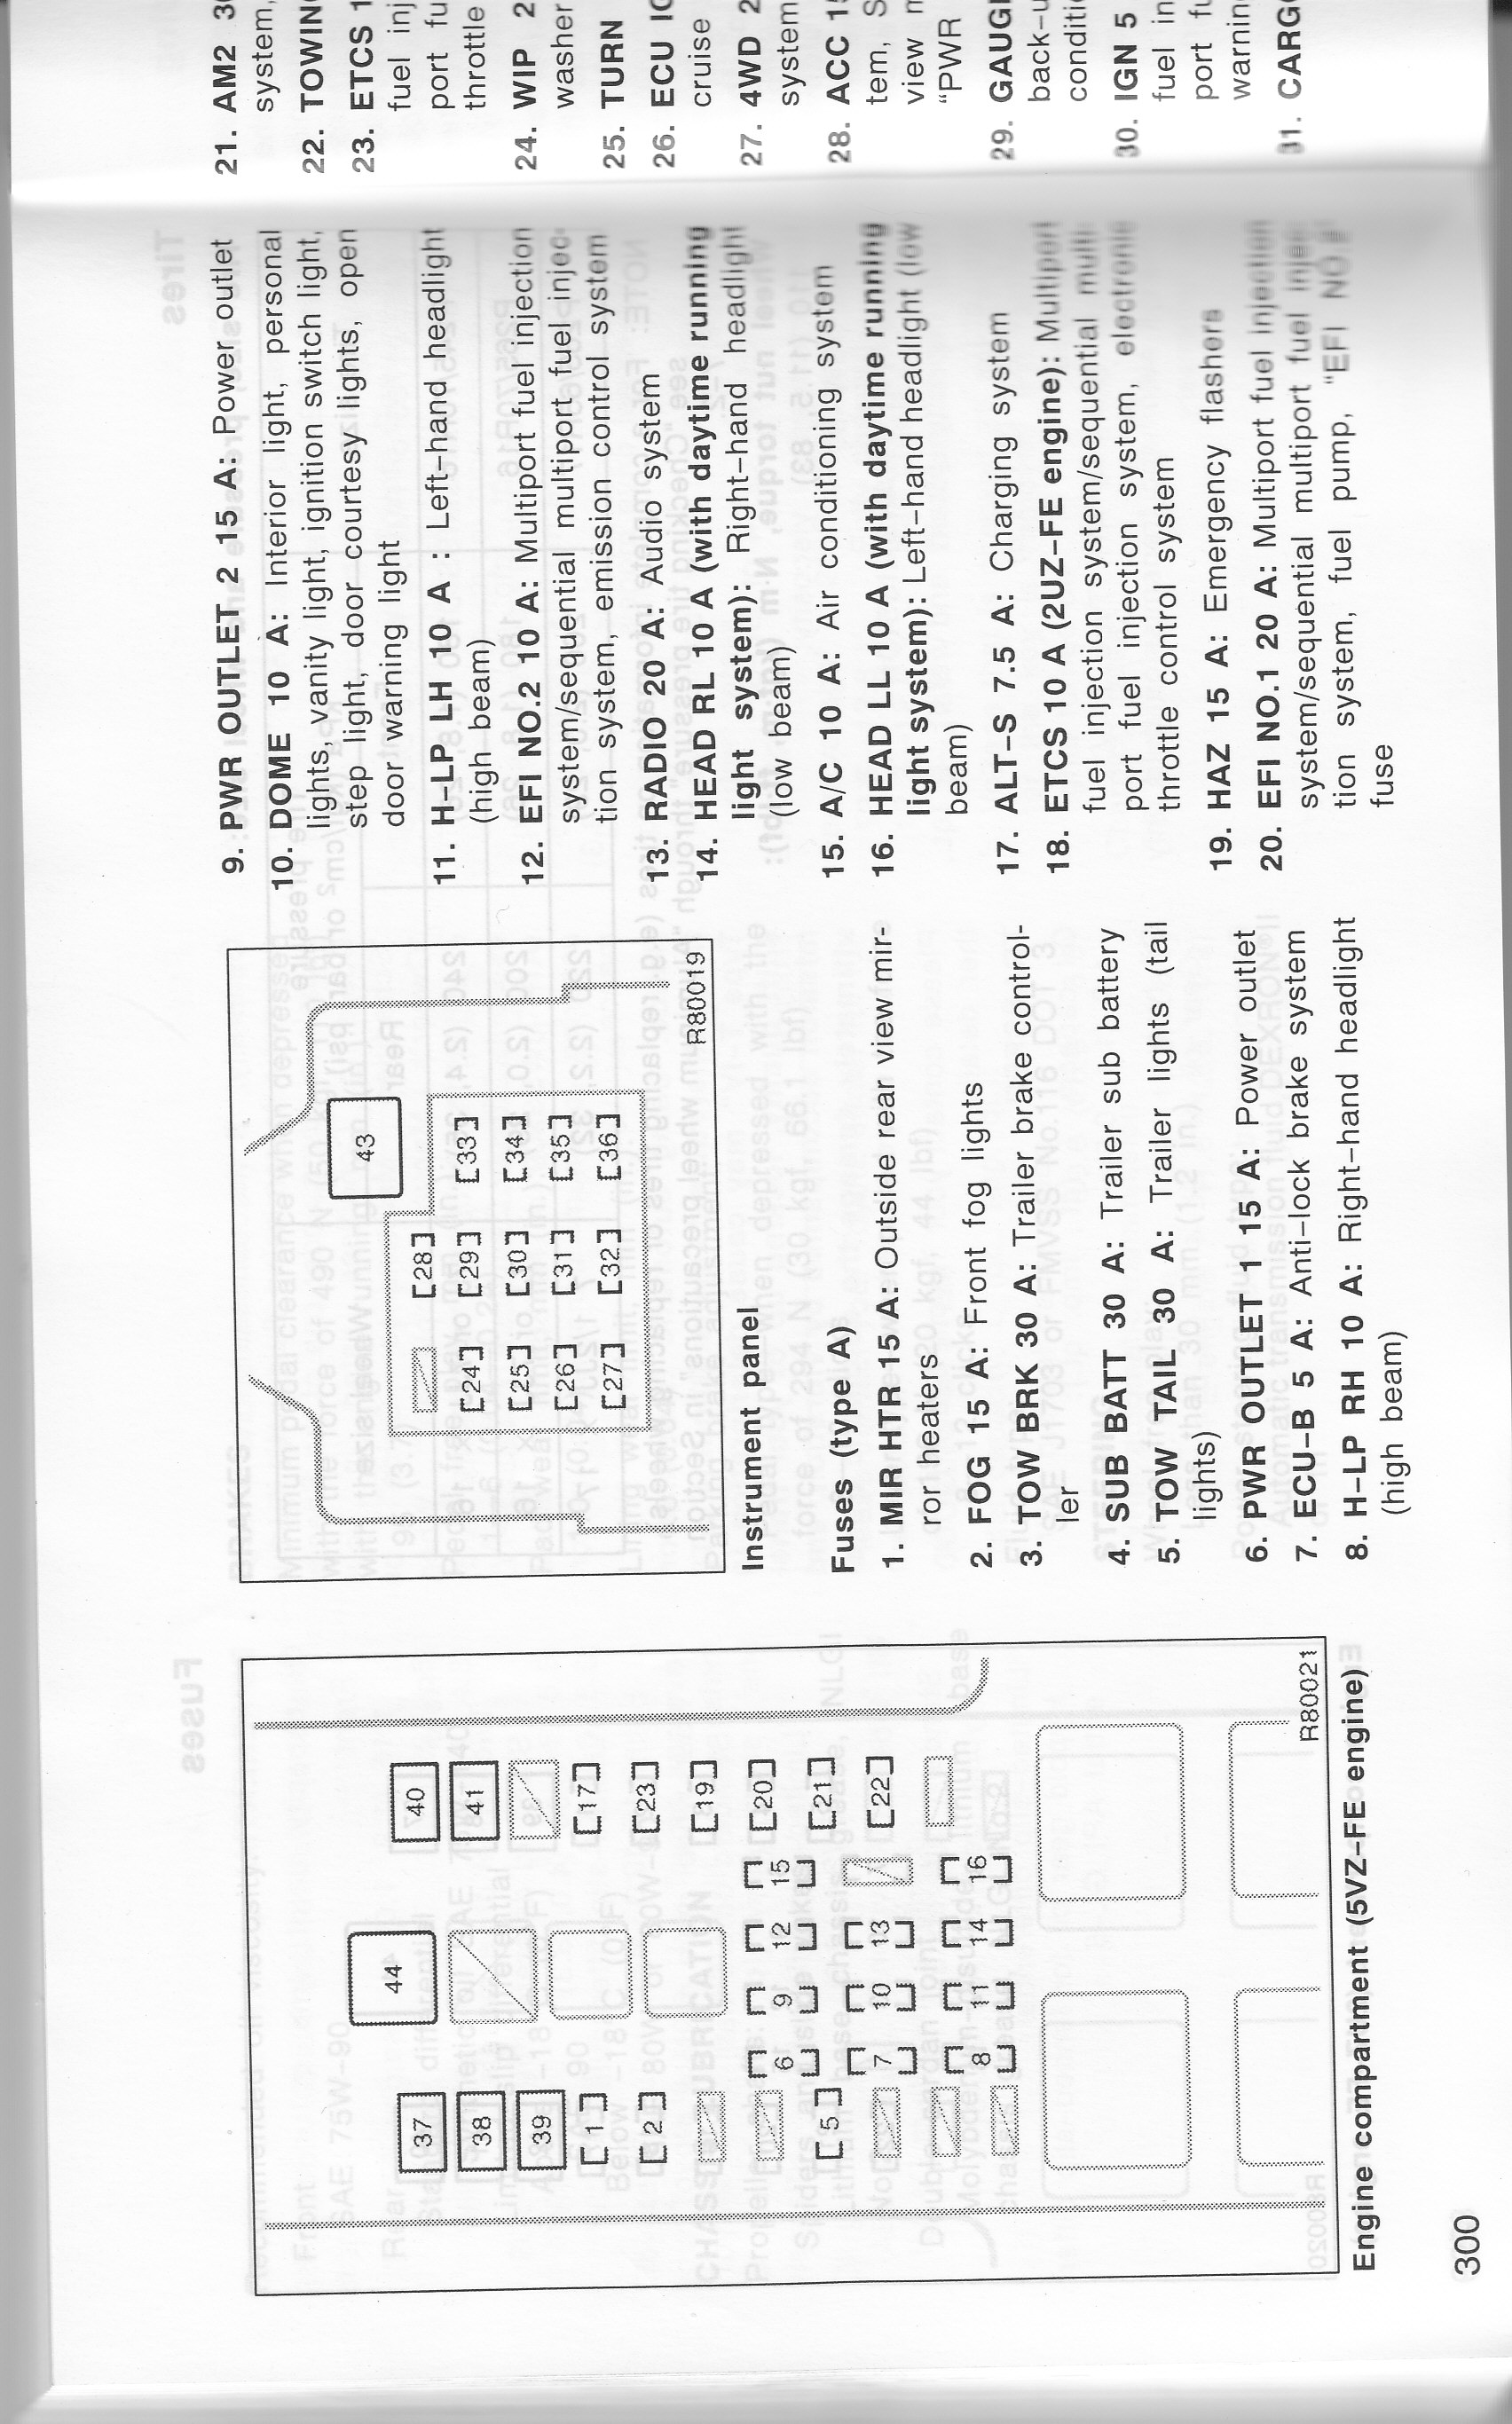 2002 Tundra Fuse Box Diagram Wiring Diagrams 2008 Toyota Sr5 Hi Ivan I Have Exactly The Same Issue With 2011